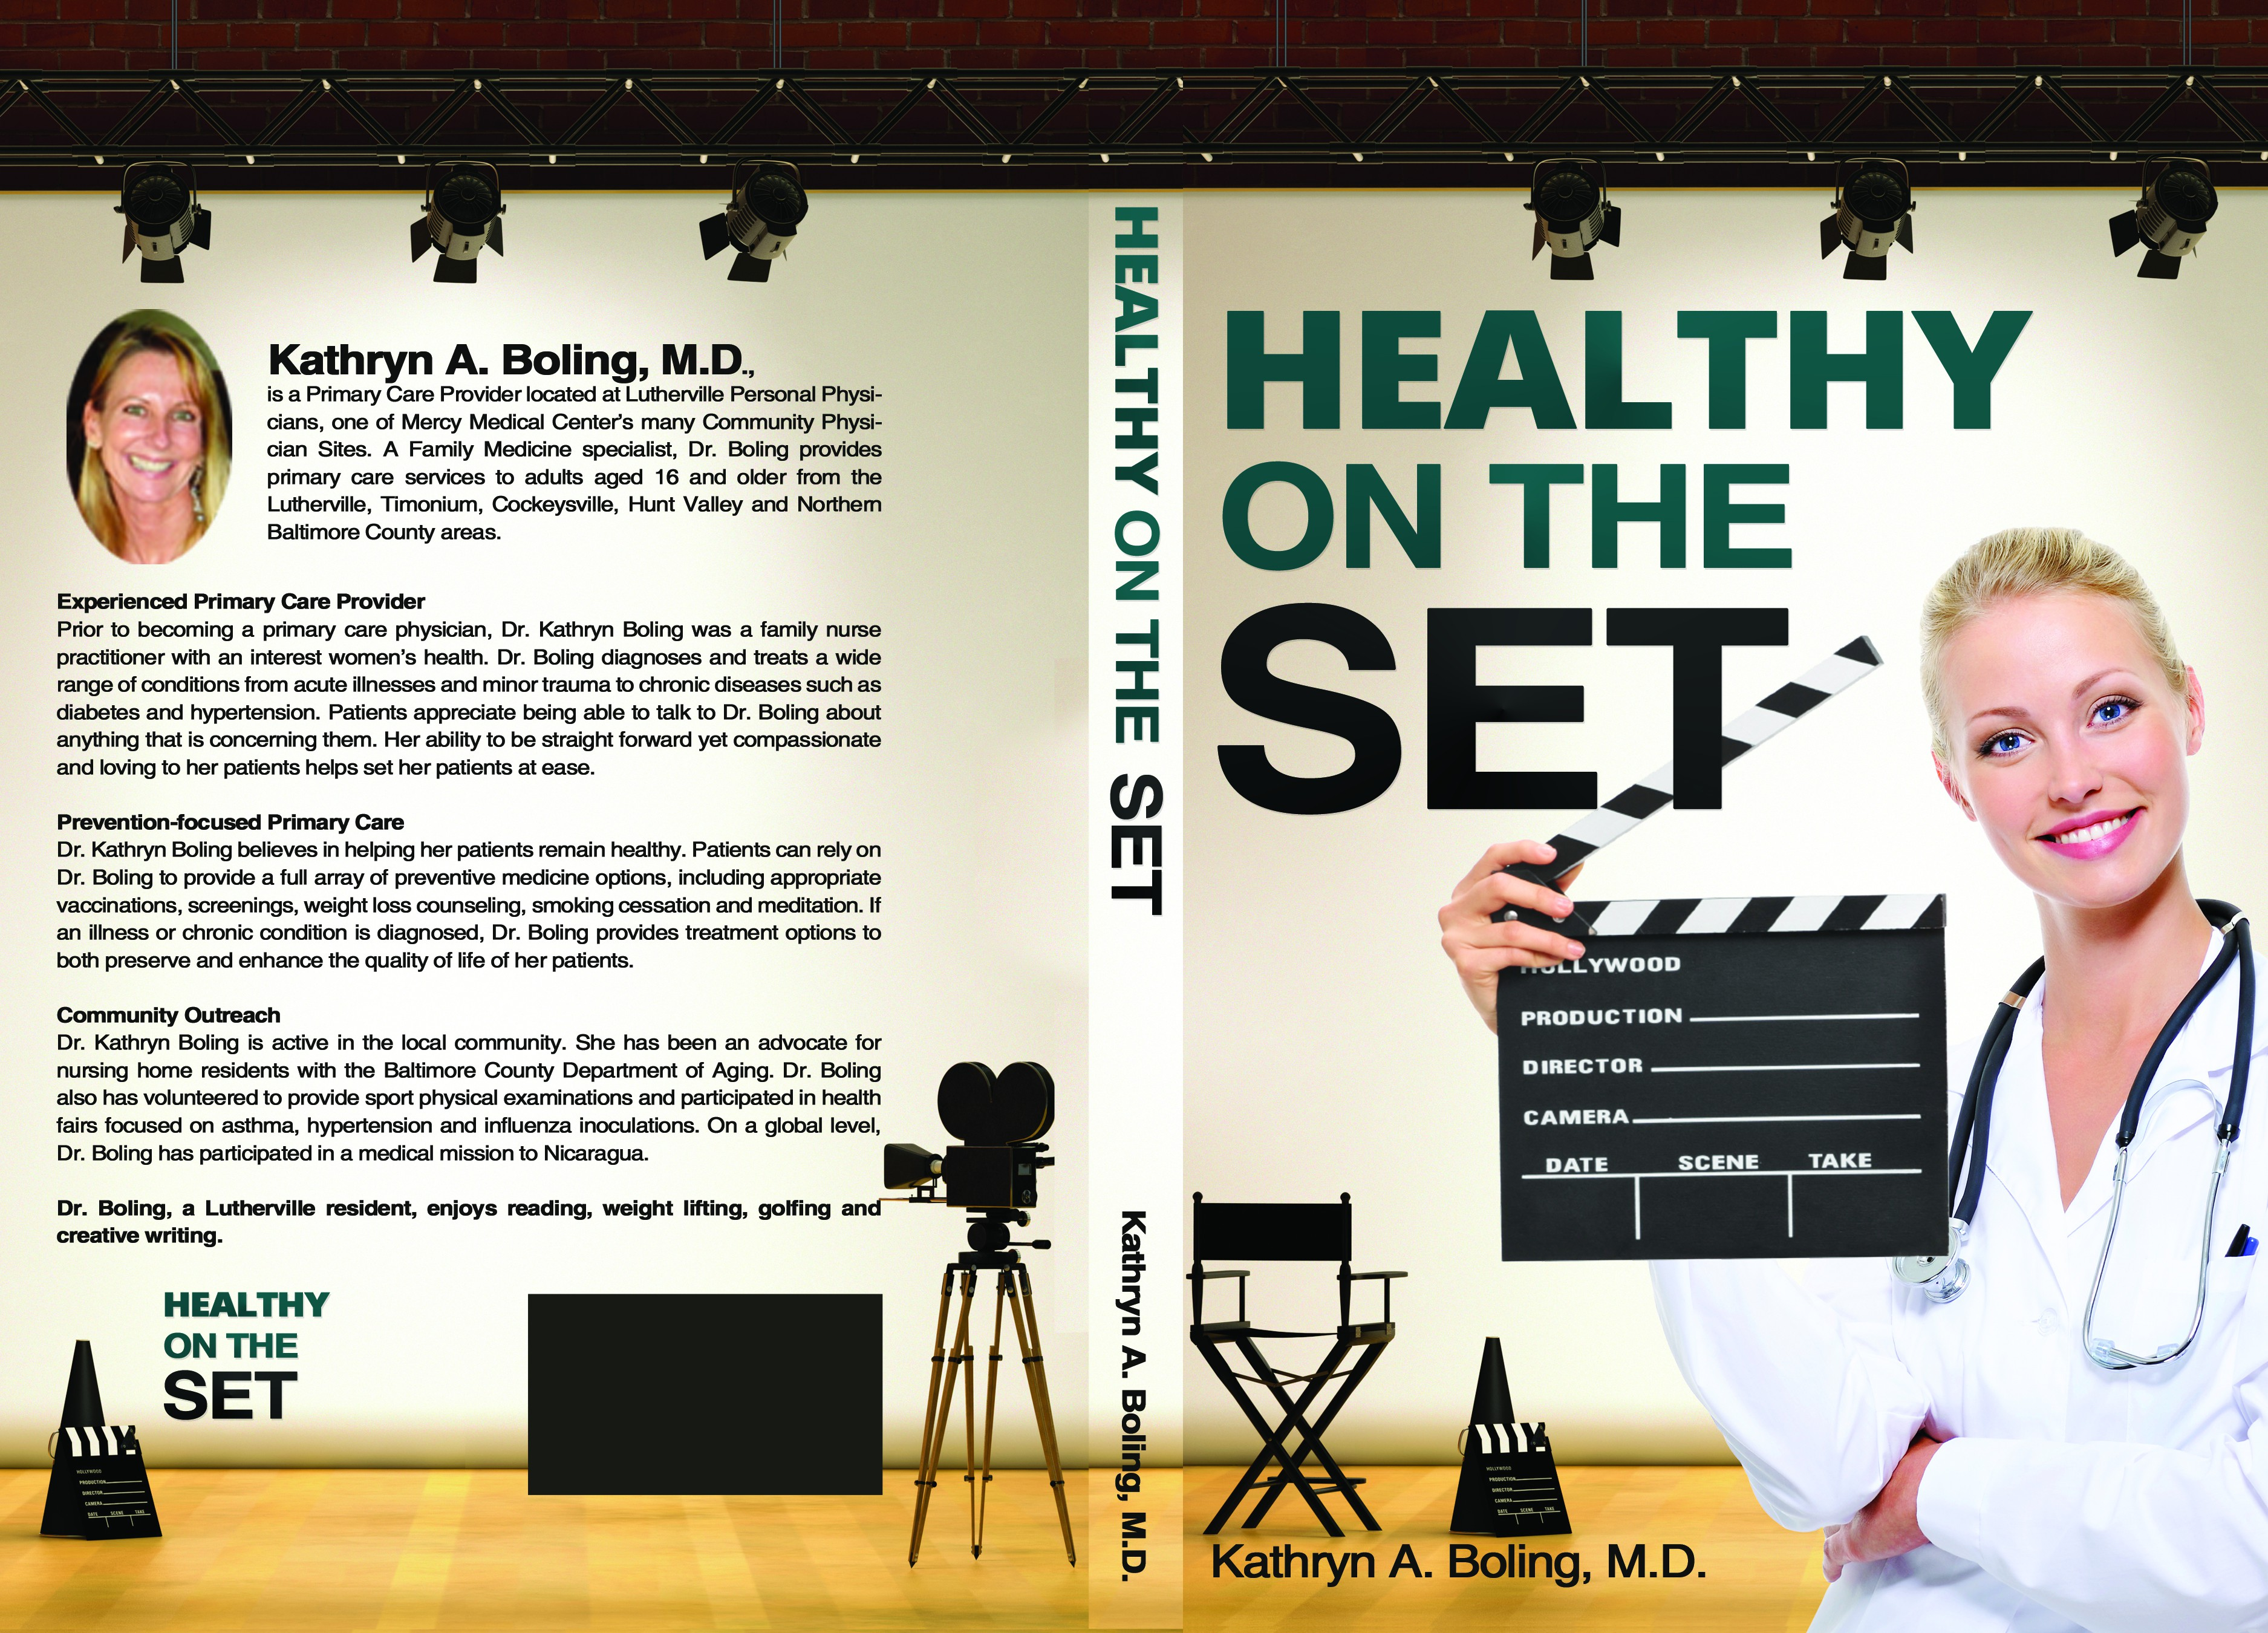 Create a cover for a book on staying healthy on a tv or film production set